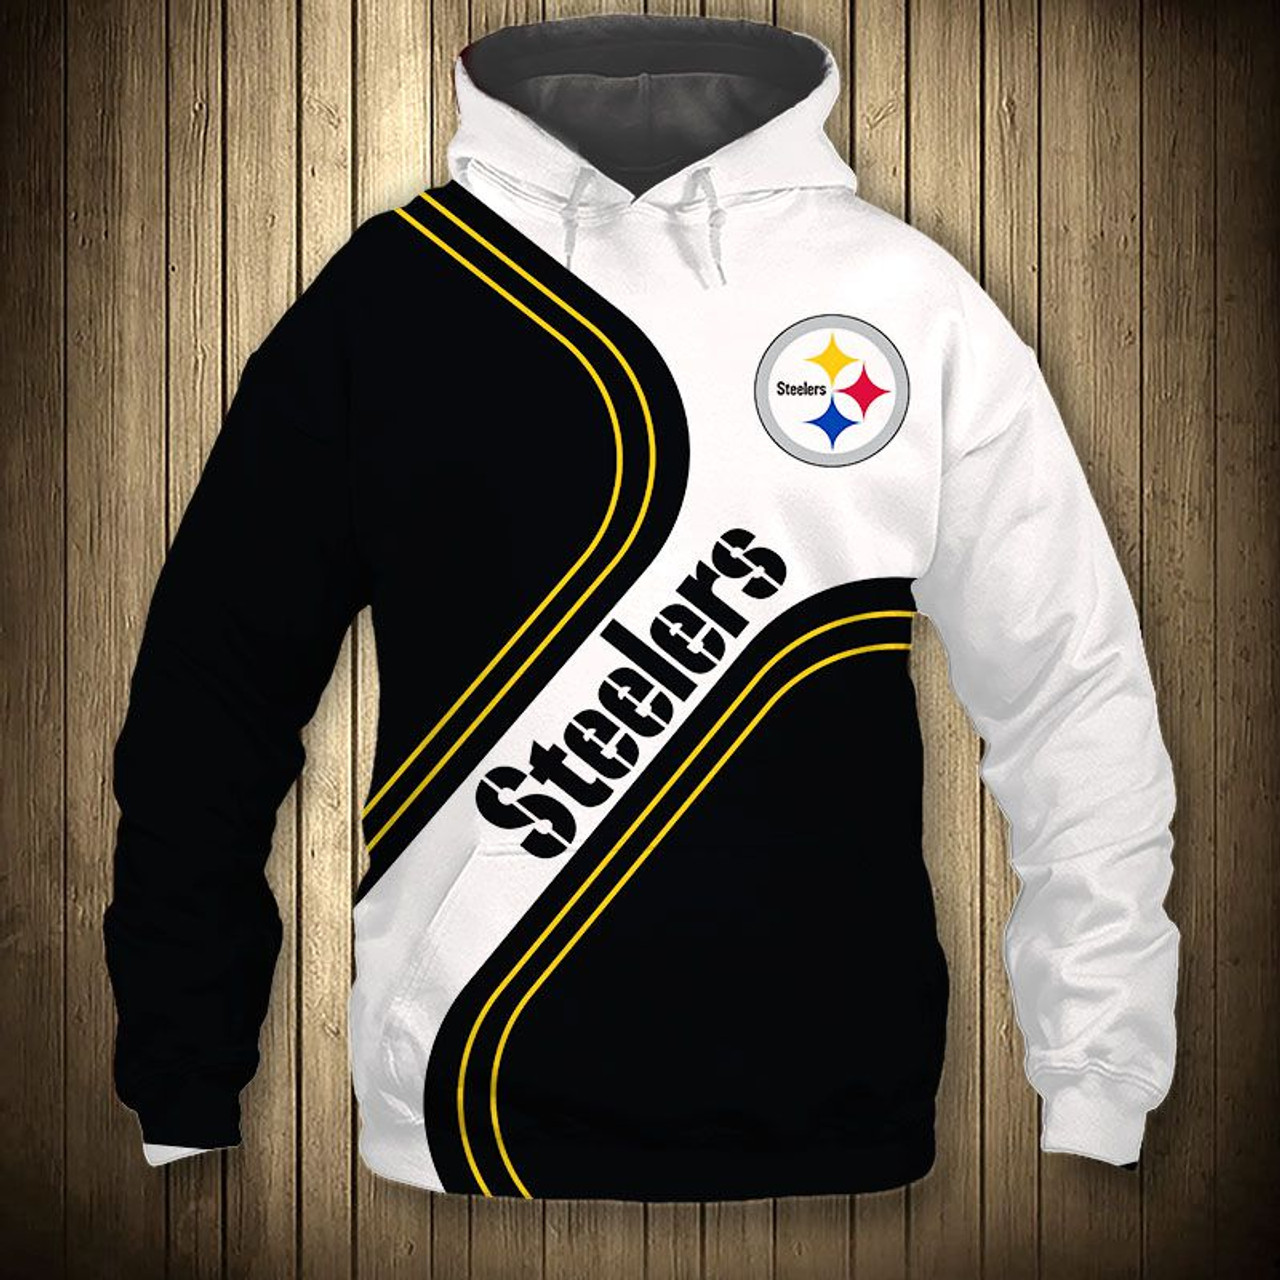 cheap for discount 9f7cd b1326 **(OFFICIAL-NEW-N.F.L.PITTSBURGH-STEELERS-TEAM-PULLOVER-HOODIES/NEW-CUSTOM-3D-GRAPHIC-PRINTED-DOUBLE-SIDED-DESIGN/ALL-OVER-OFFICIAL-CLASSIC-STEELERS-L...